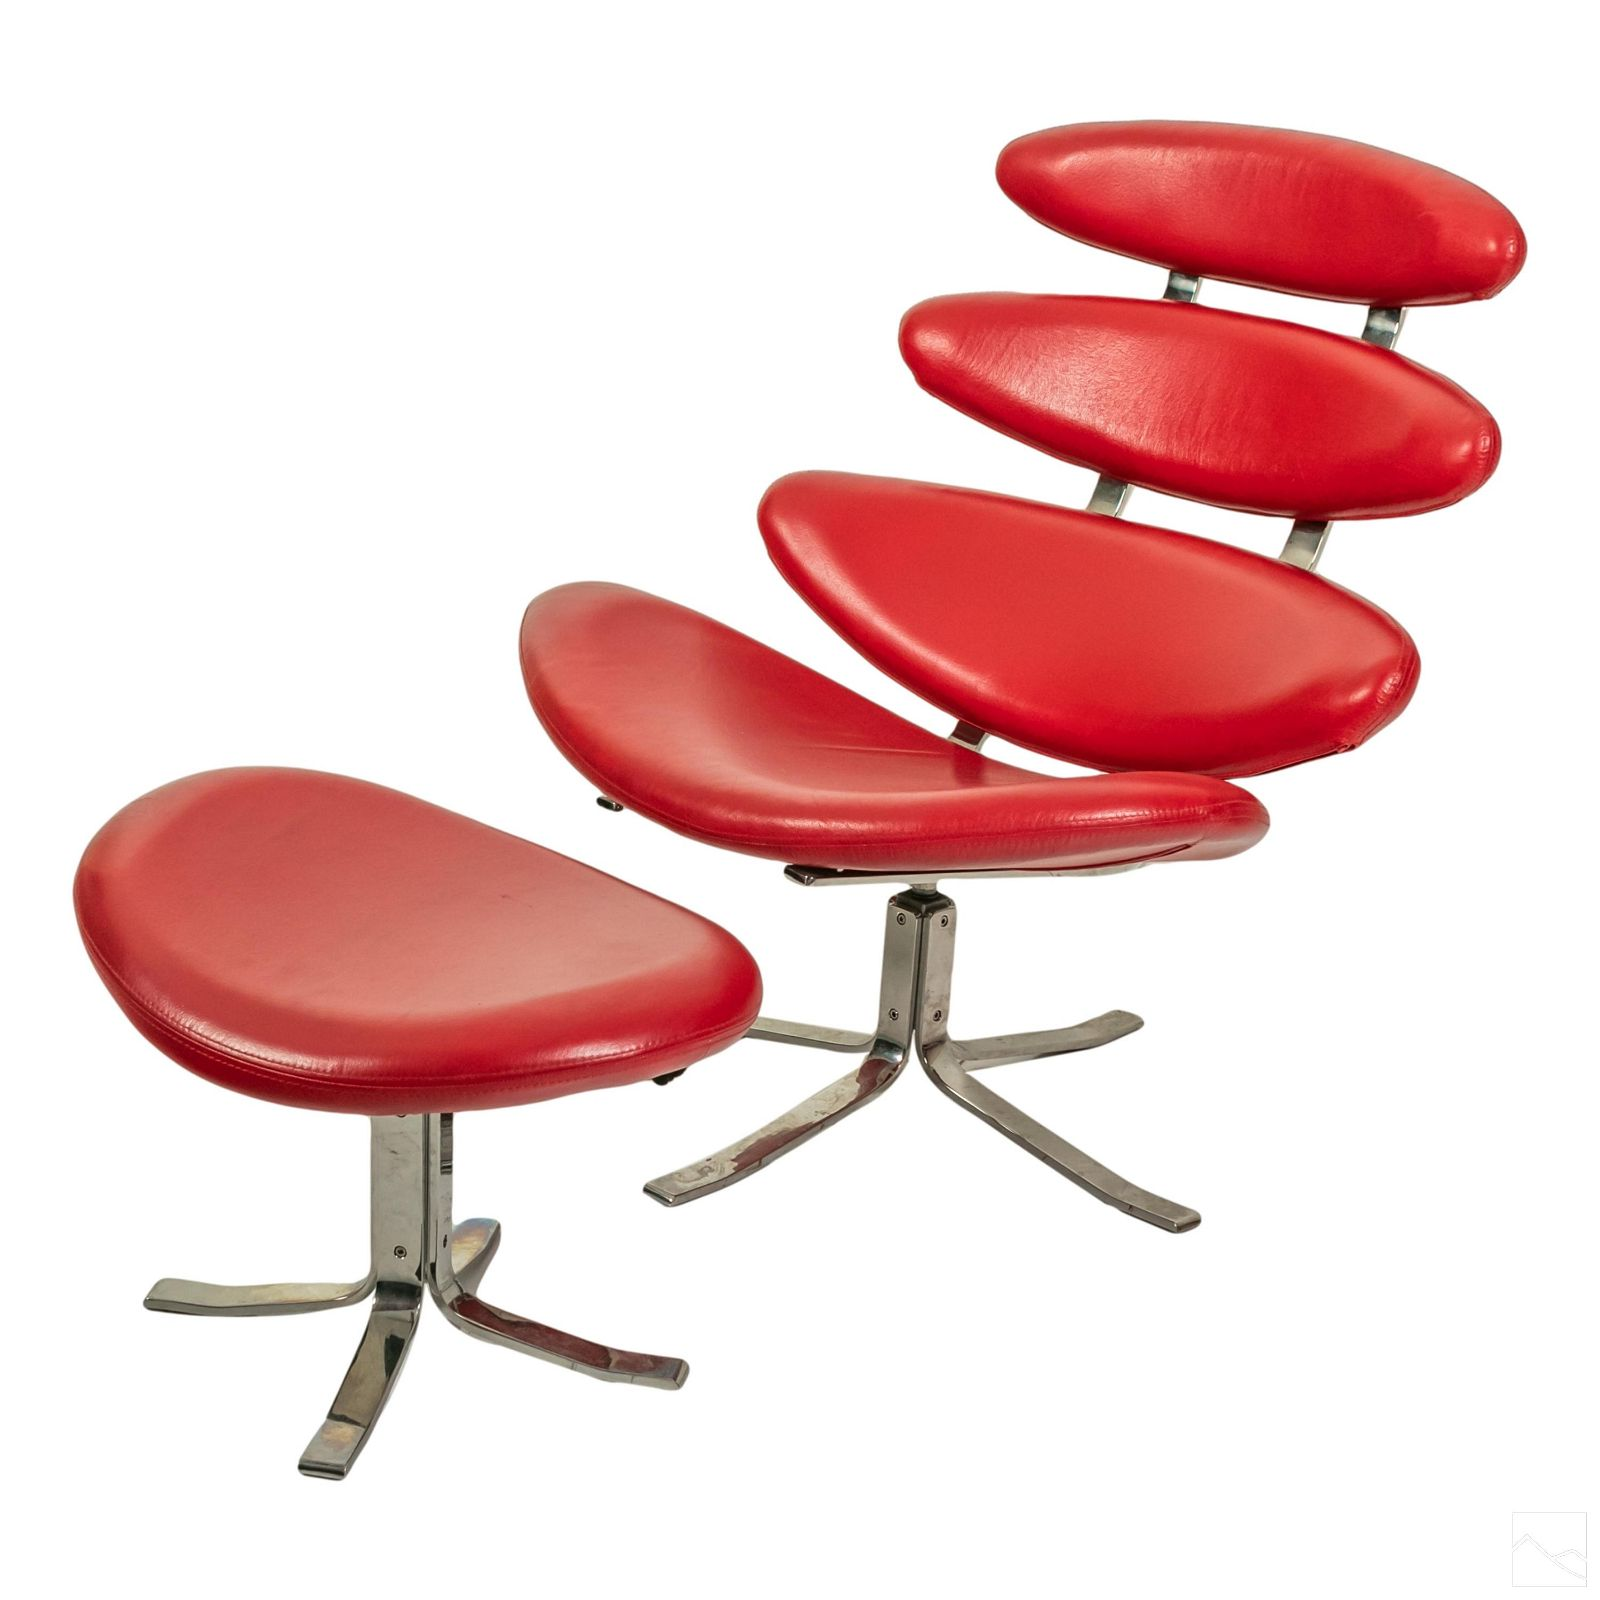 Corona Chair with Ottoman Designed by Paul Volther